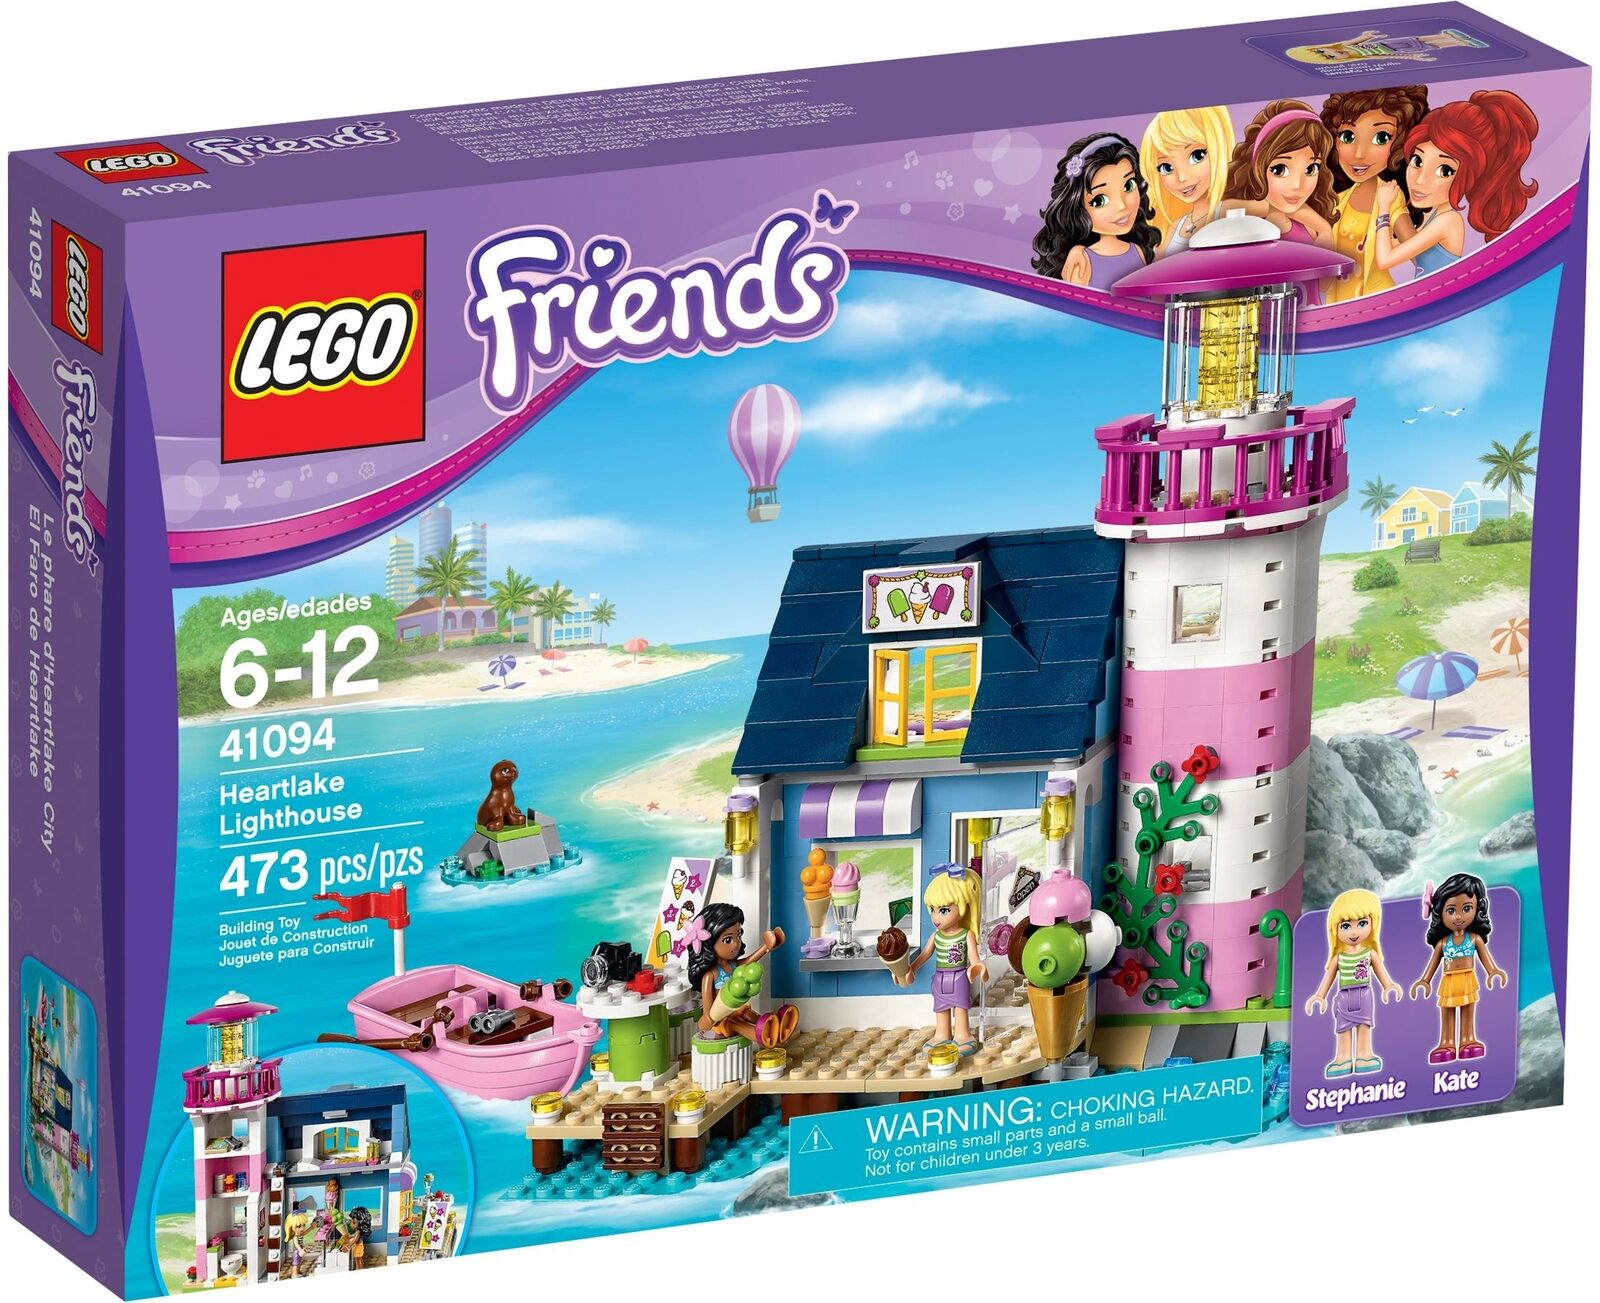 LEGO 41094 Friends HEARTLAKE LIGHTHOUSE - NEW MISB